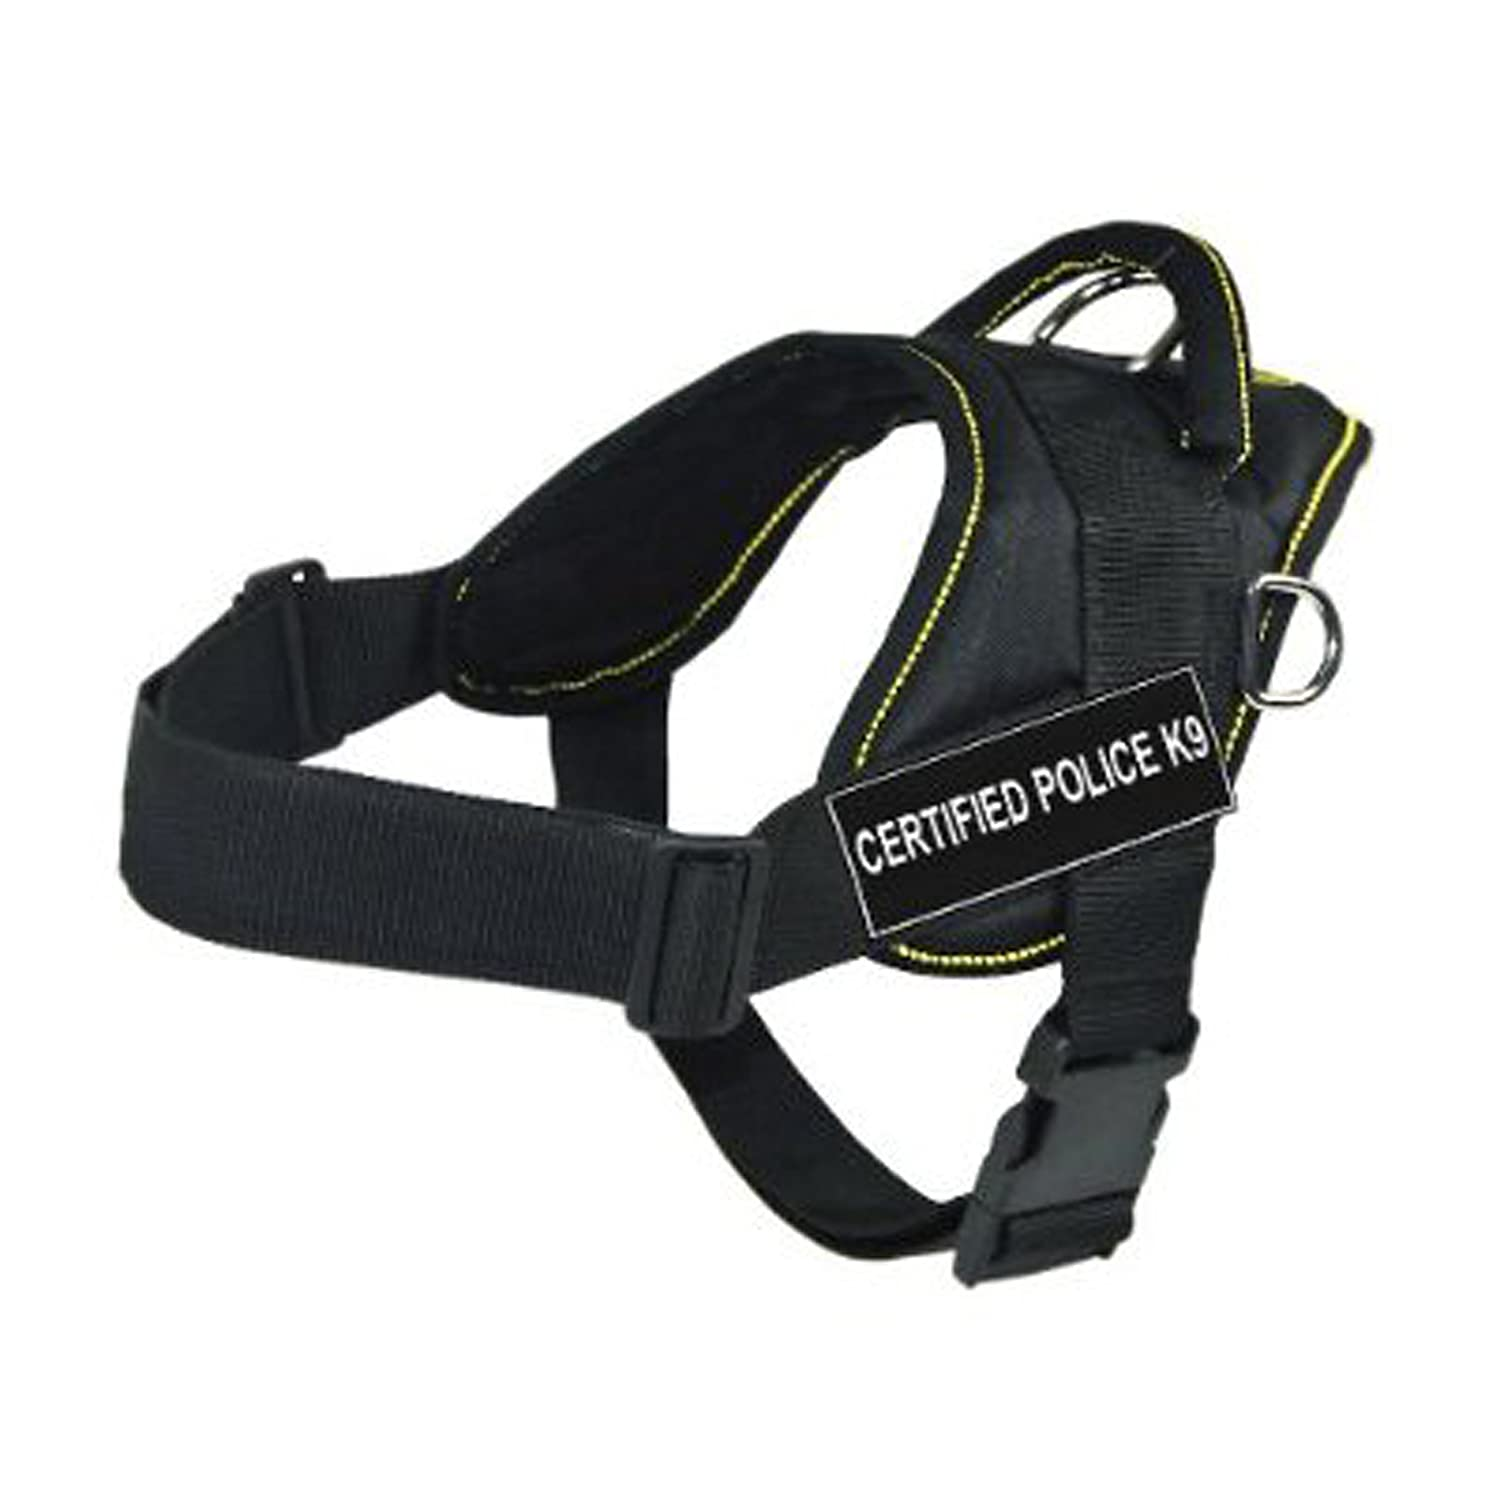 Dean & Tyler DT Fun Works Harness, Certified Police K9, Black With Yellow Trim, Large Fits Girth Size  32-Inch to 42-Inch